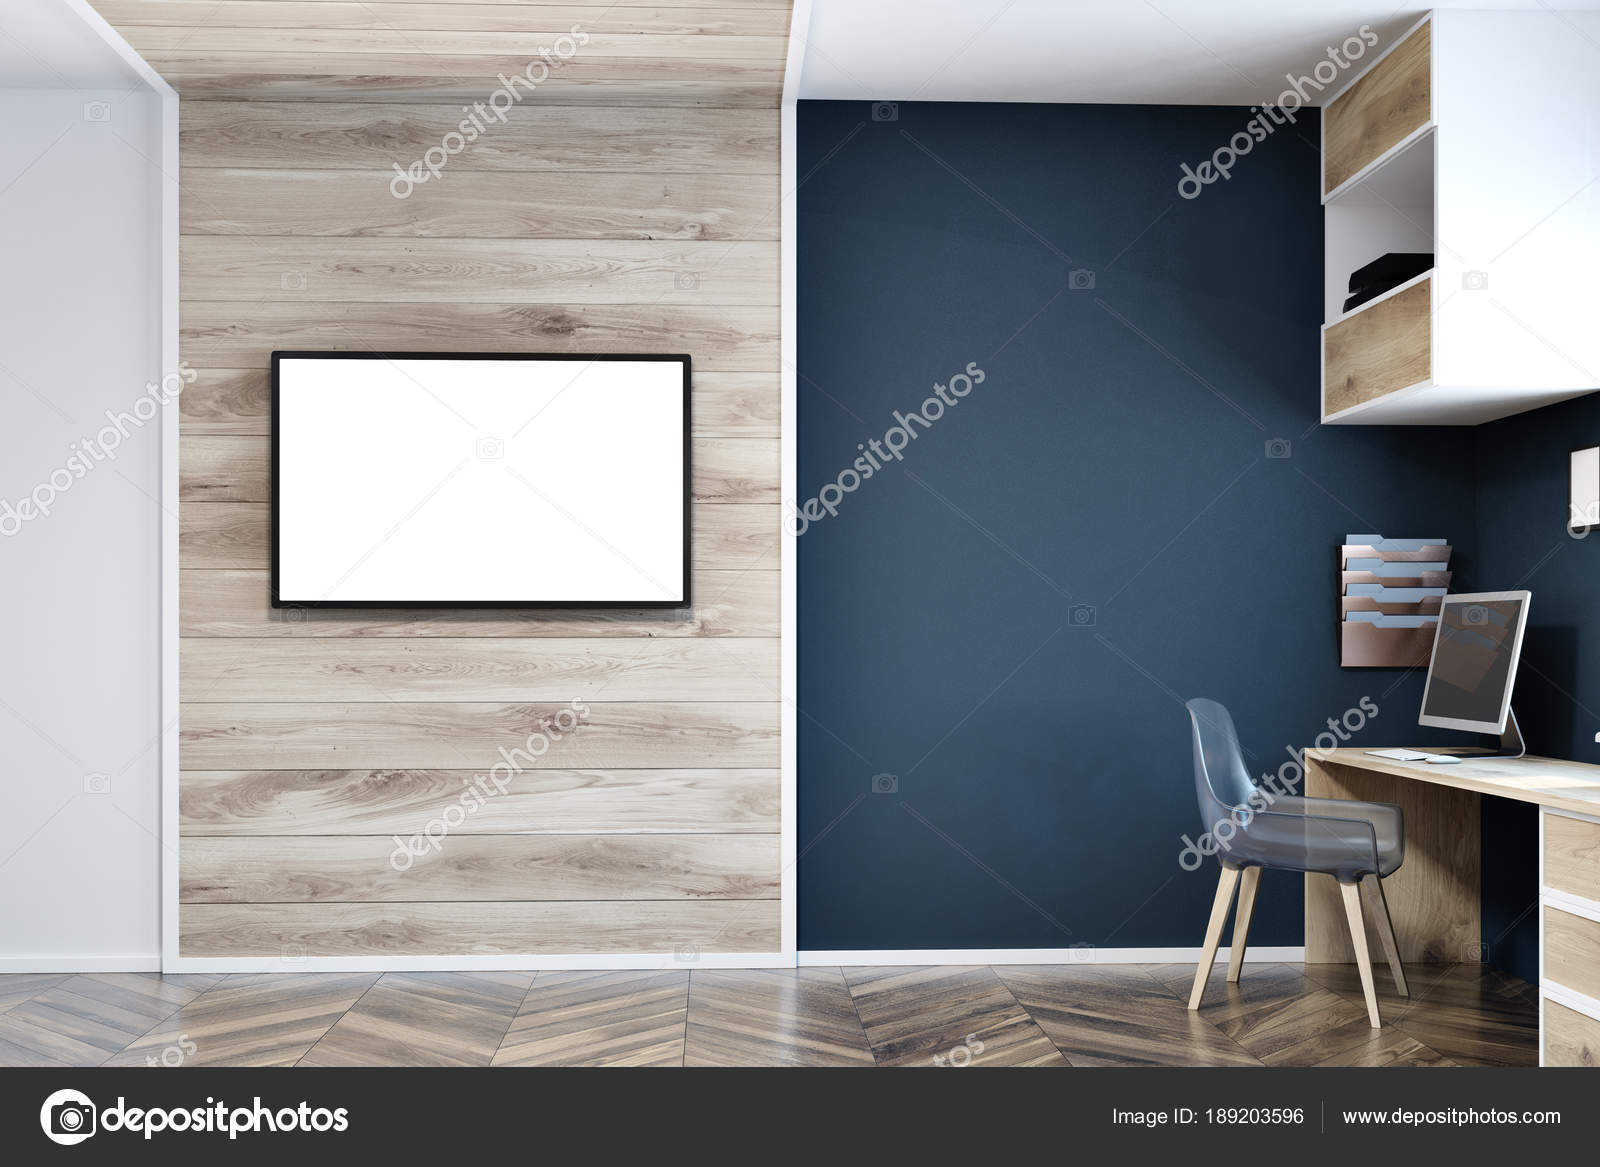 Blue home office wall Color Dark Blue Wall Home Office Tv Screen Mock Up Stock Image Depositphotos Dark Blue Wall Home Office Tv Screen Mock Up Stock Photo